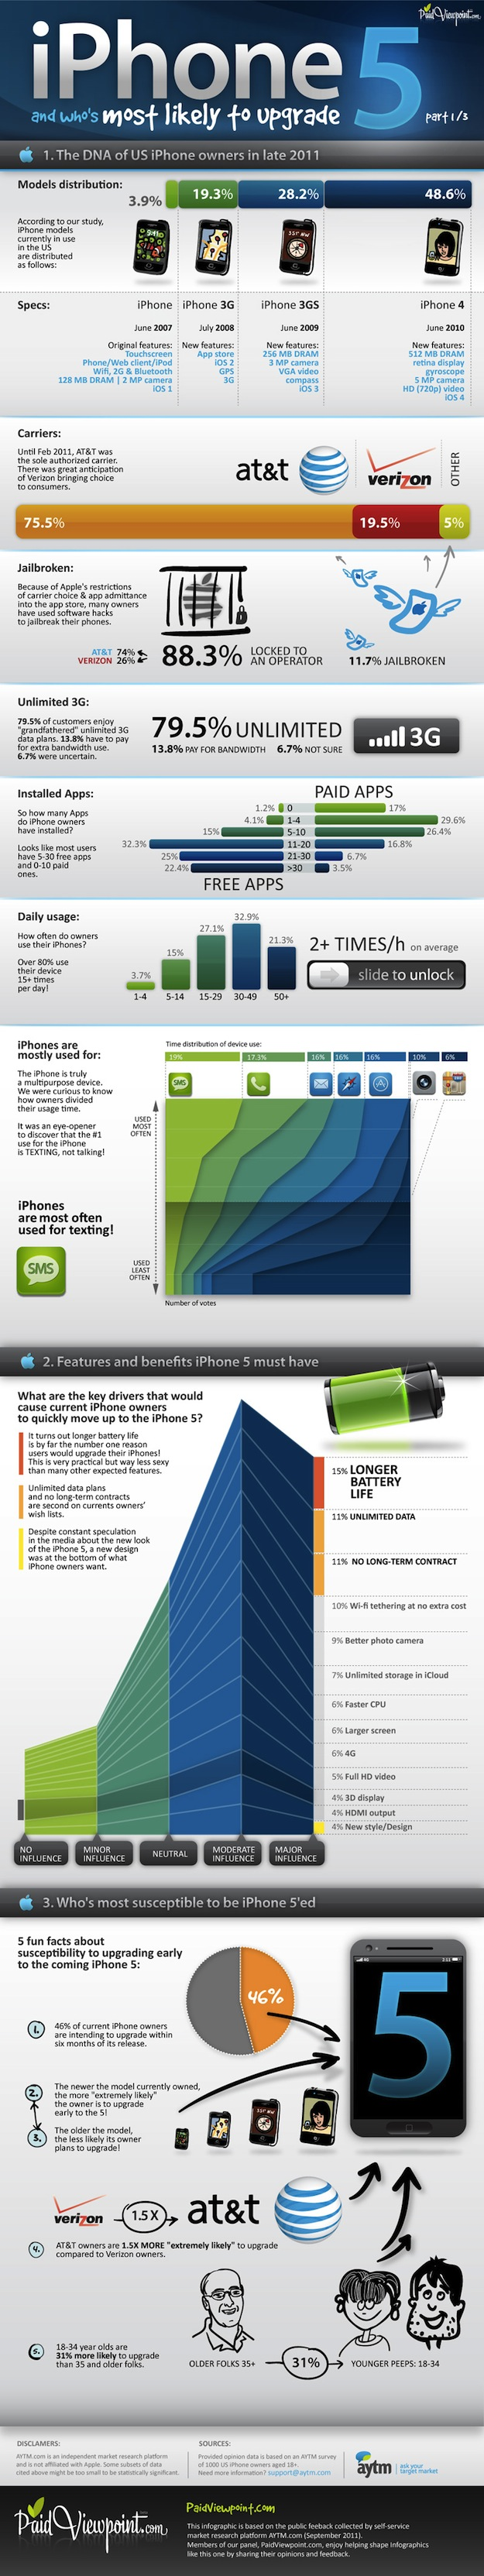 iPhone 5 release infographic